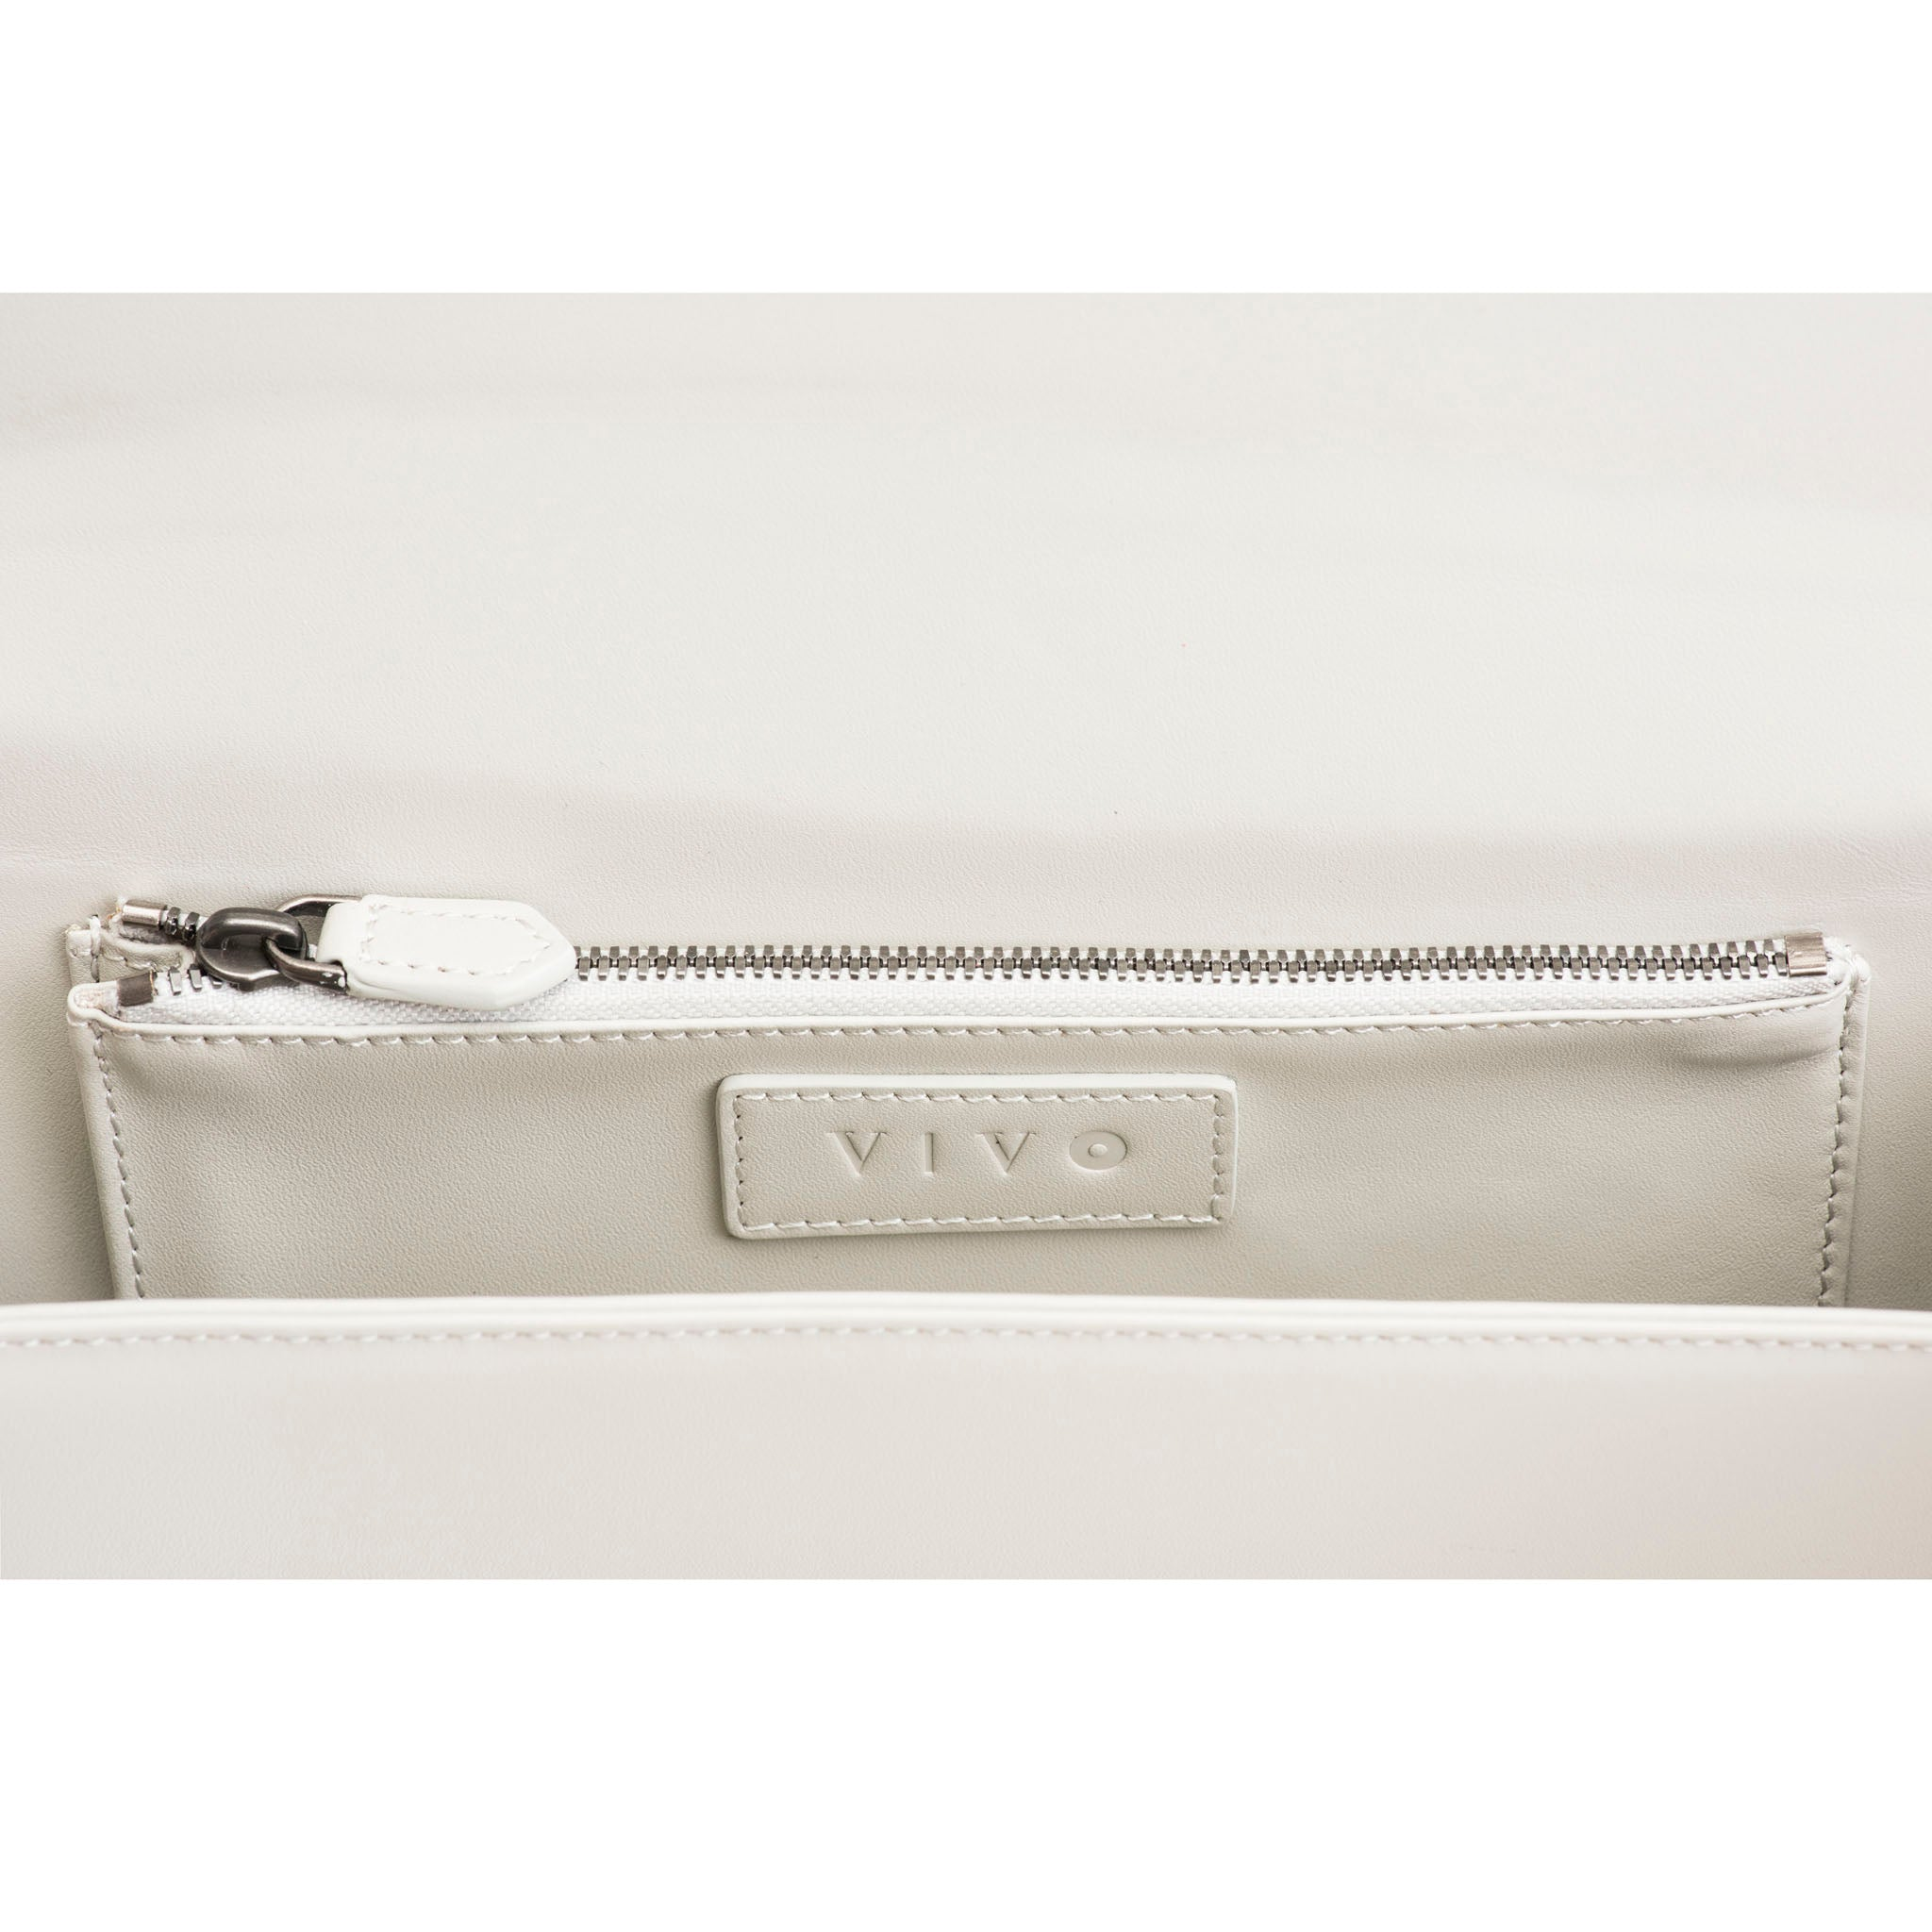 Oyster Leather Lining Inside Zip Pocket  View Cleo - Vivo Direct